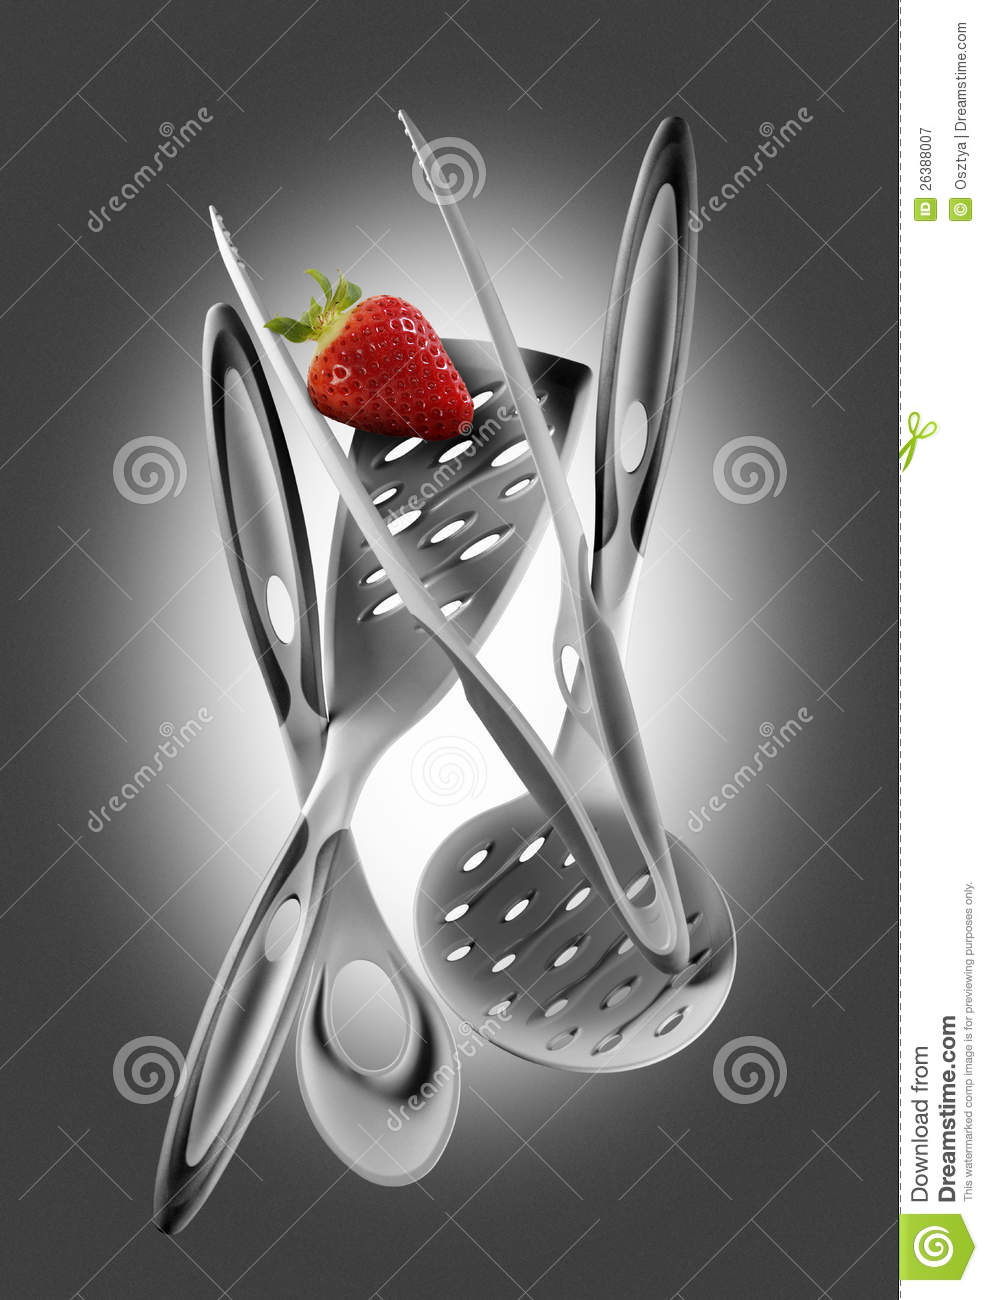 Kitchen Tools Royalty Free Stock Photography Image 26388007